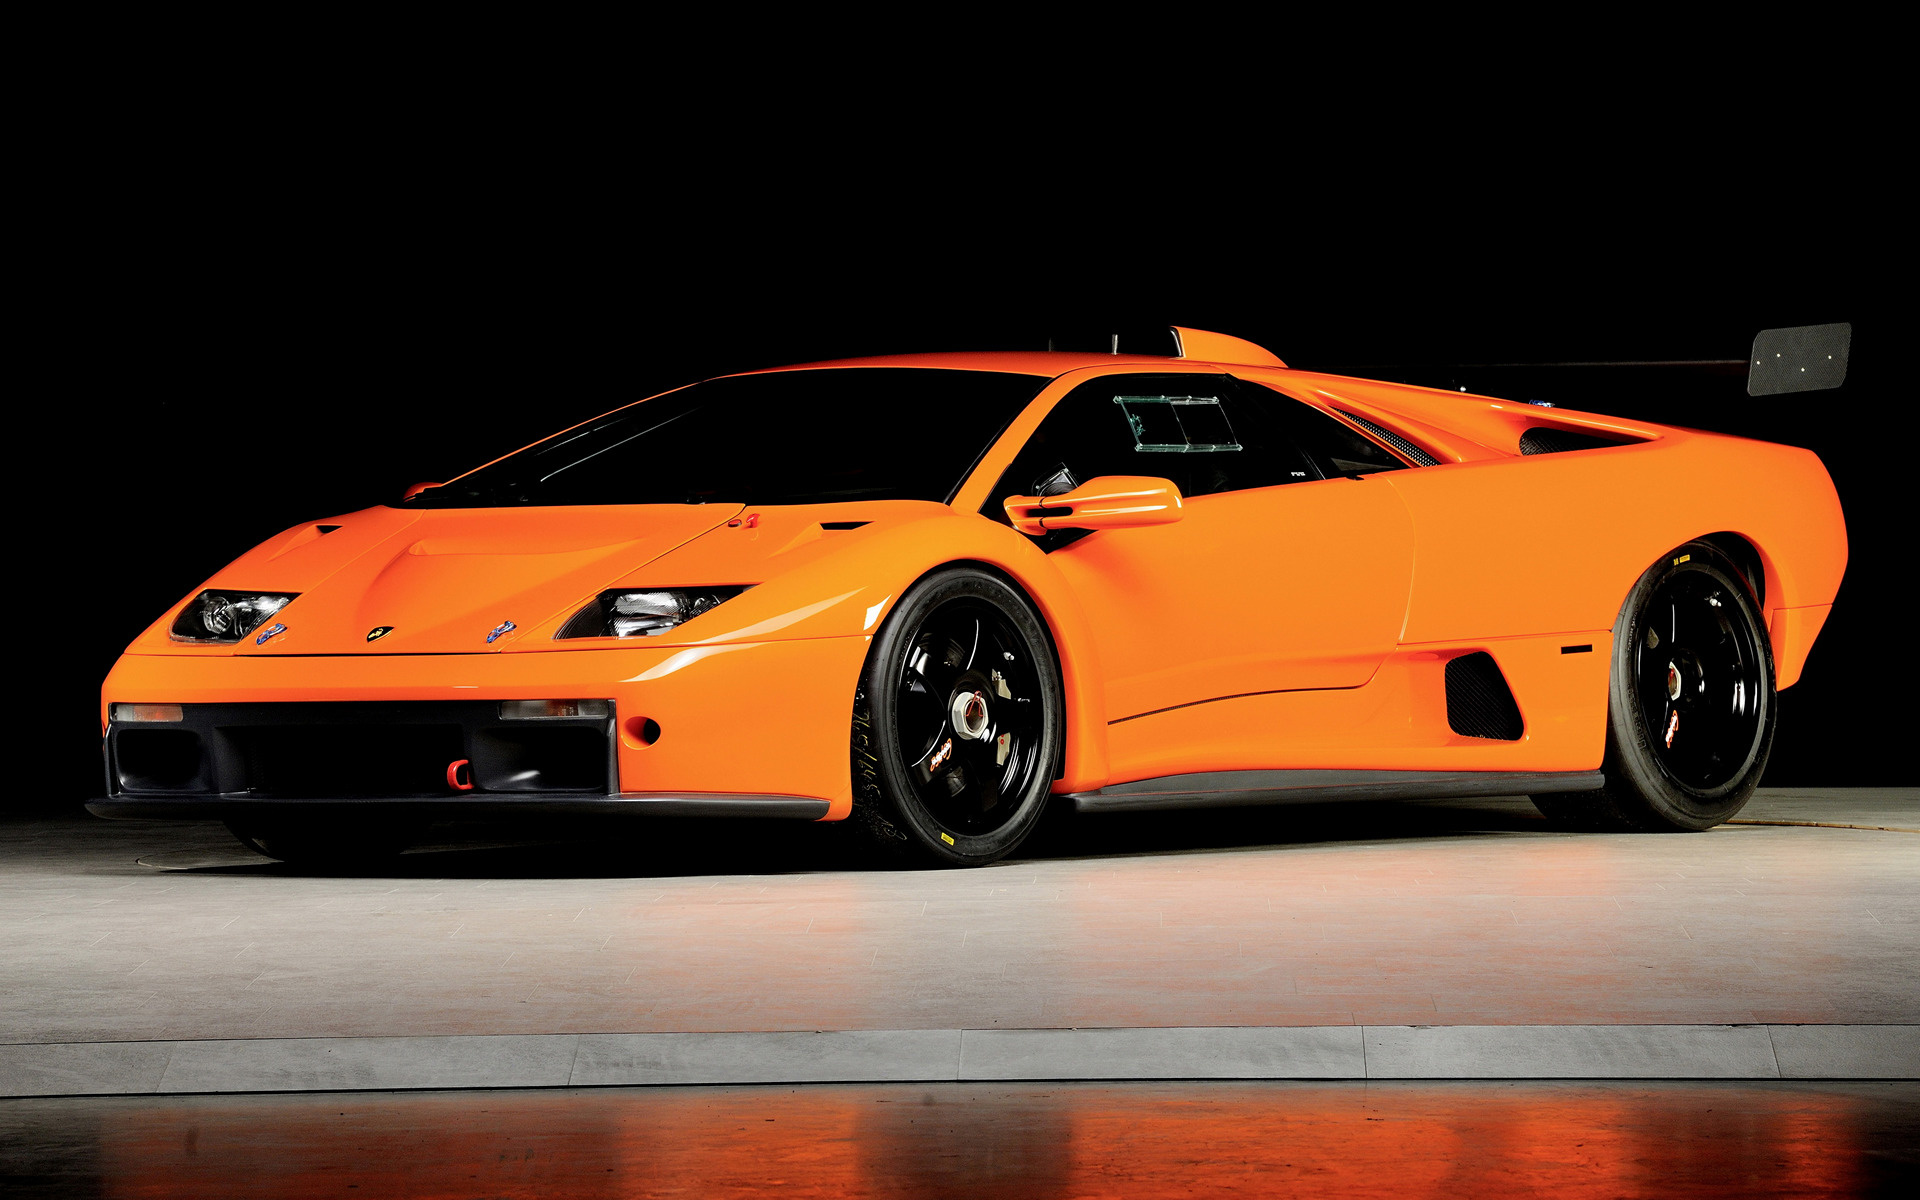 Rolls Royce Bentley >> 2000 Lamborghini Diablo GTR - Wallpapers and HD Images ...